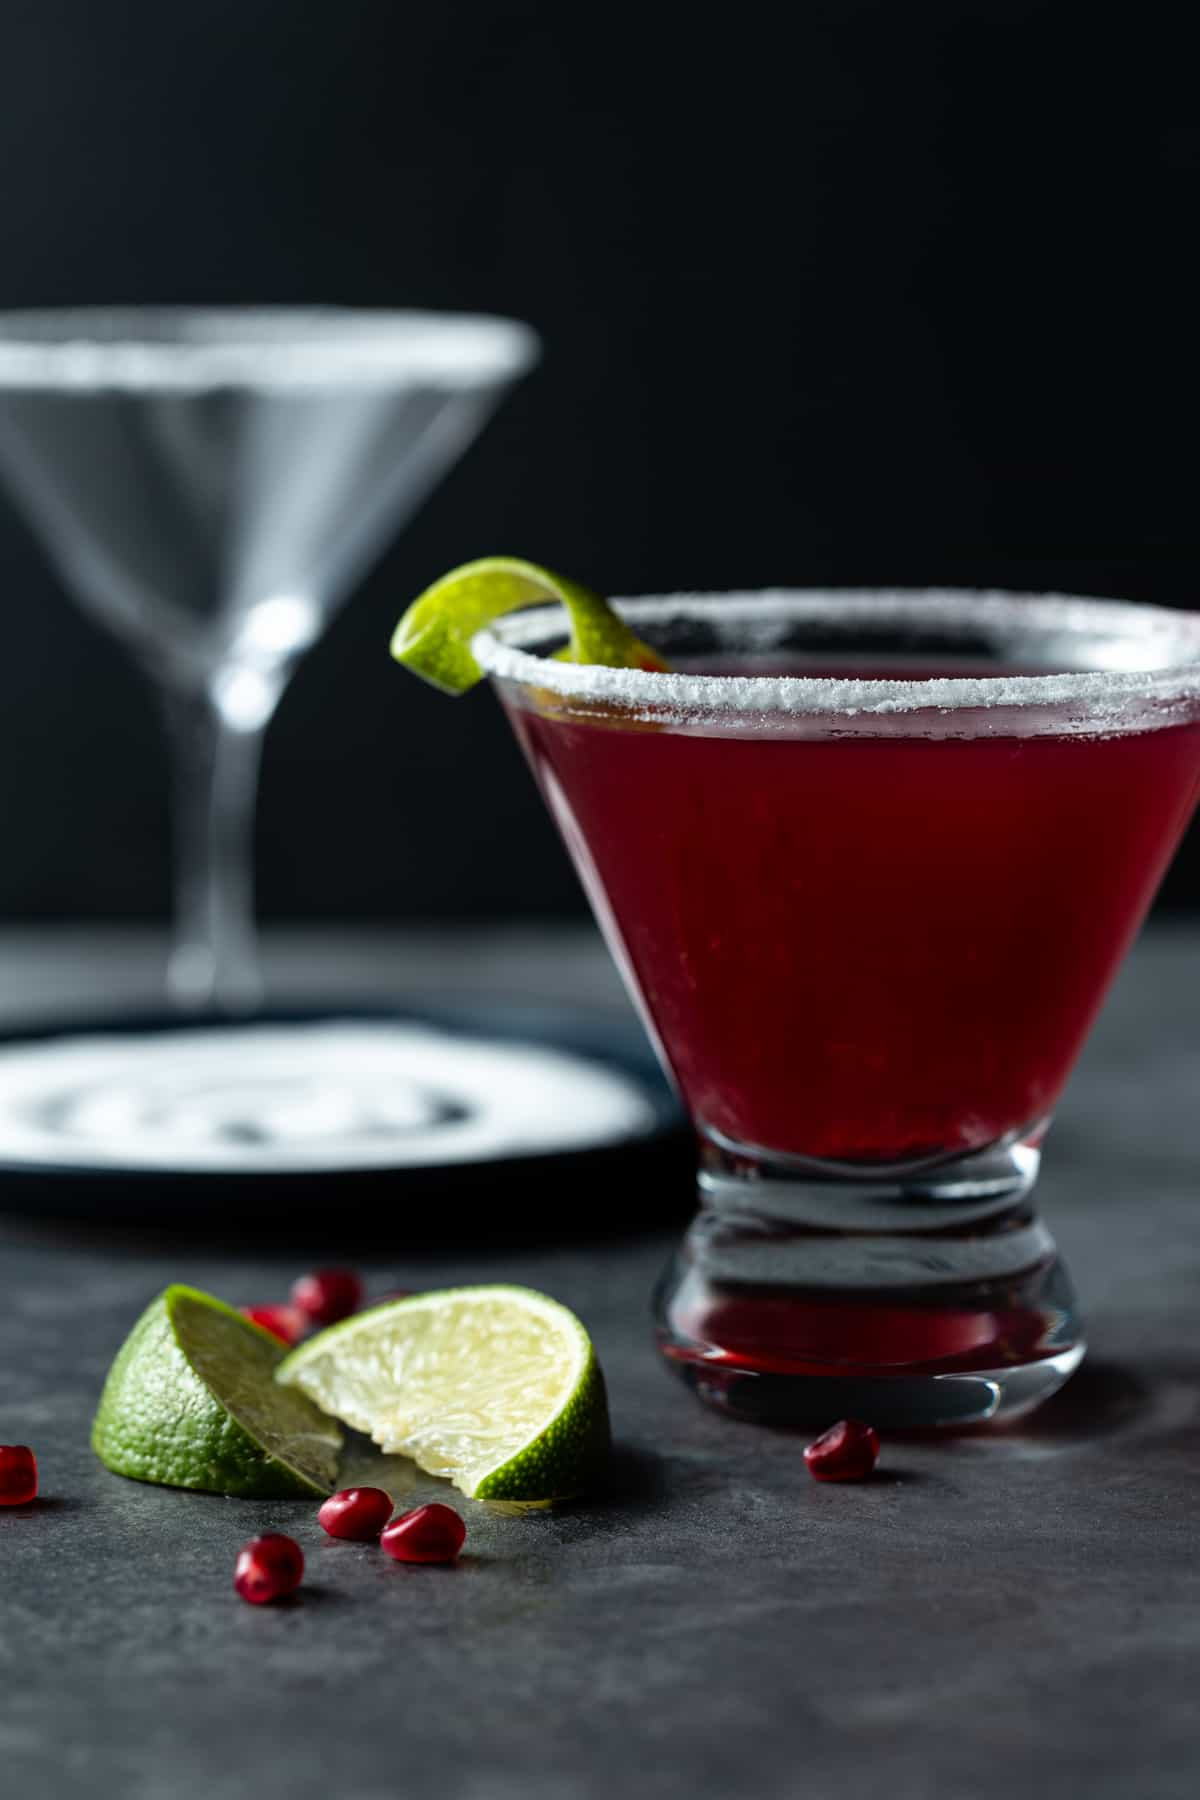 A glass filled with pomegranate martini.